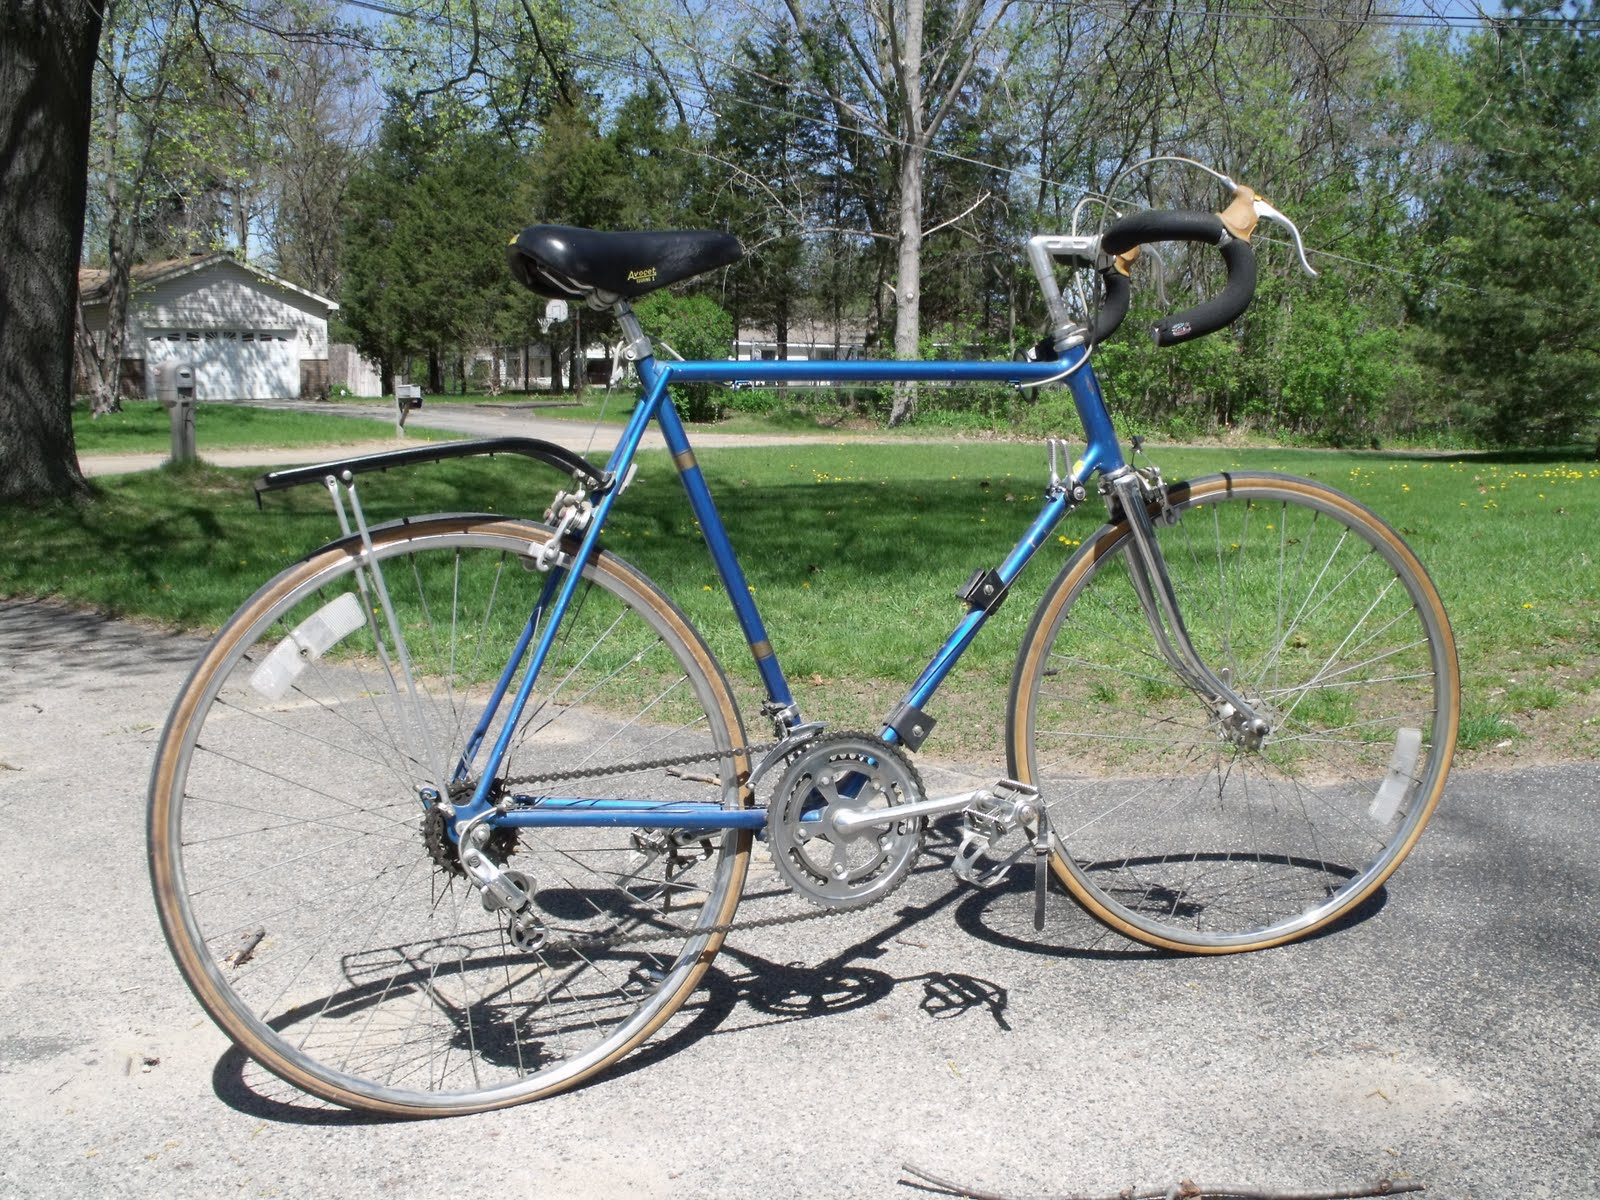 aa39f5defc3 Above: The Schwinn Continental right off the truck. I was pleased to see  the condition of this vintage Continental. I did however strip it down to  the frame ...